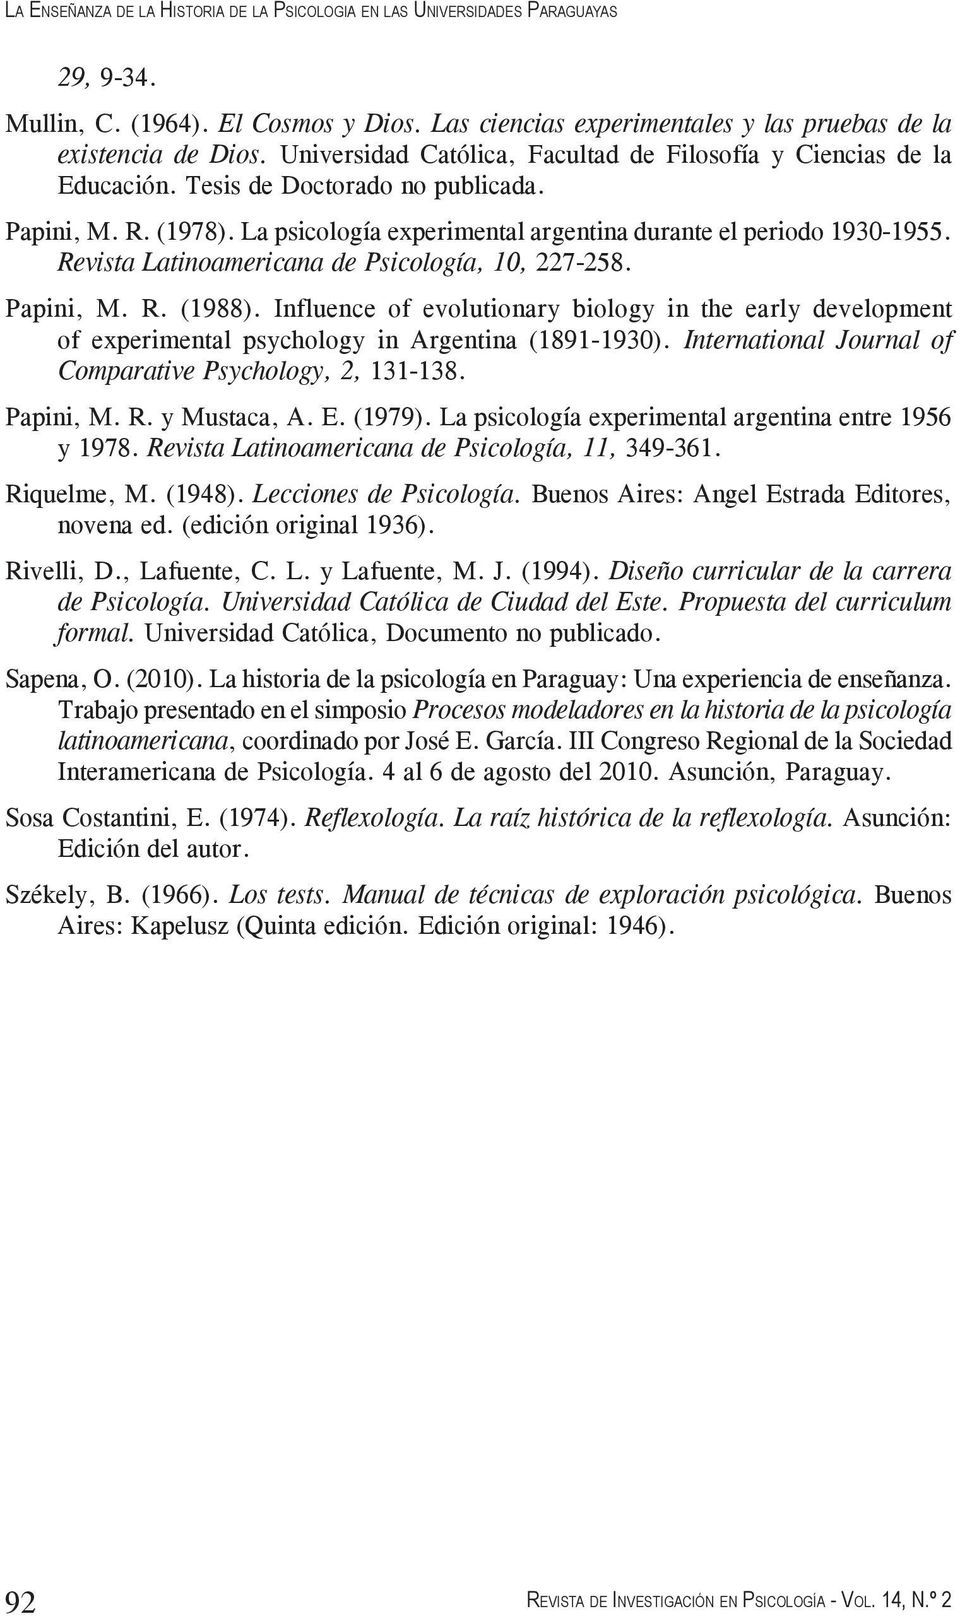 Revista Latinoamericana de Psicología, 10, 227-258. Papini, M. R. (1988). Influence of evolutionary biology in the early development of experimental psychology in Argentina (1891-1930).